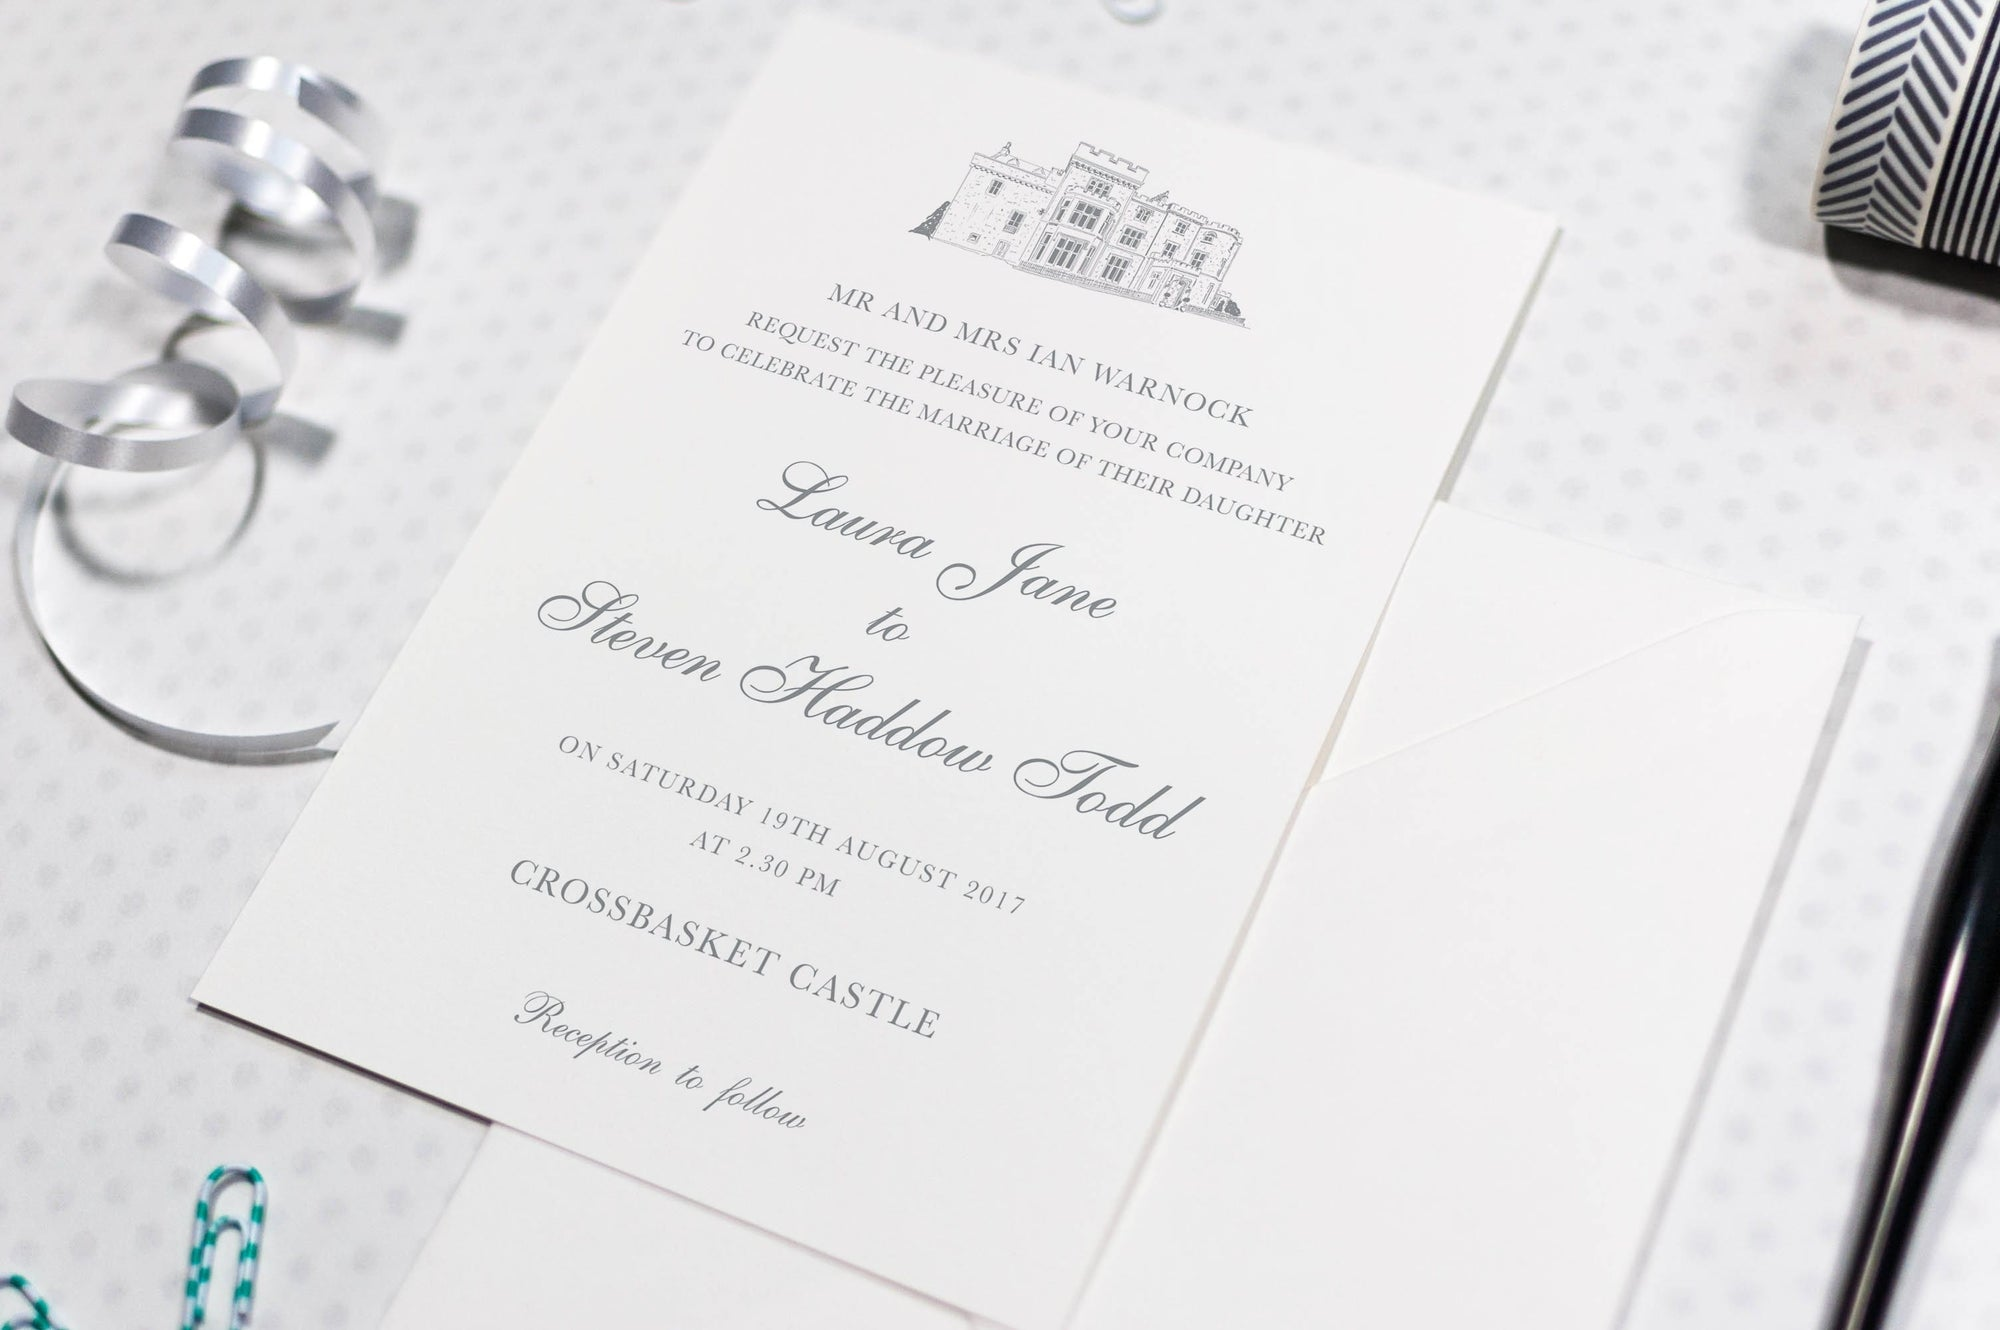 luxuryweddinginvitationsbycombossa HD Printed Wedding Invitations Sample Invitation £1.60 (Colour as shown) / As Shown Crossbasket Castle Wedding Invitation, Sample